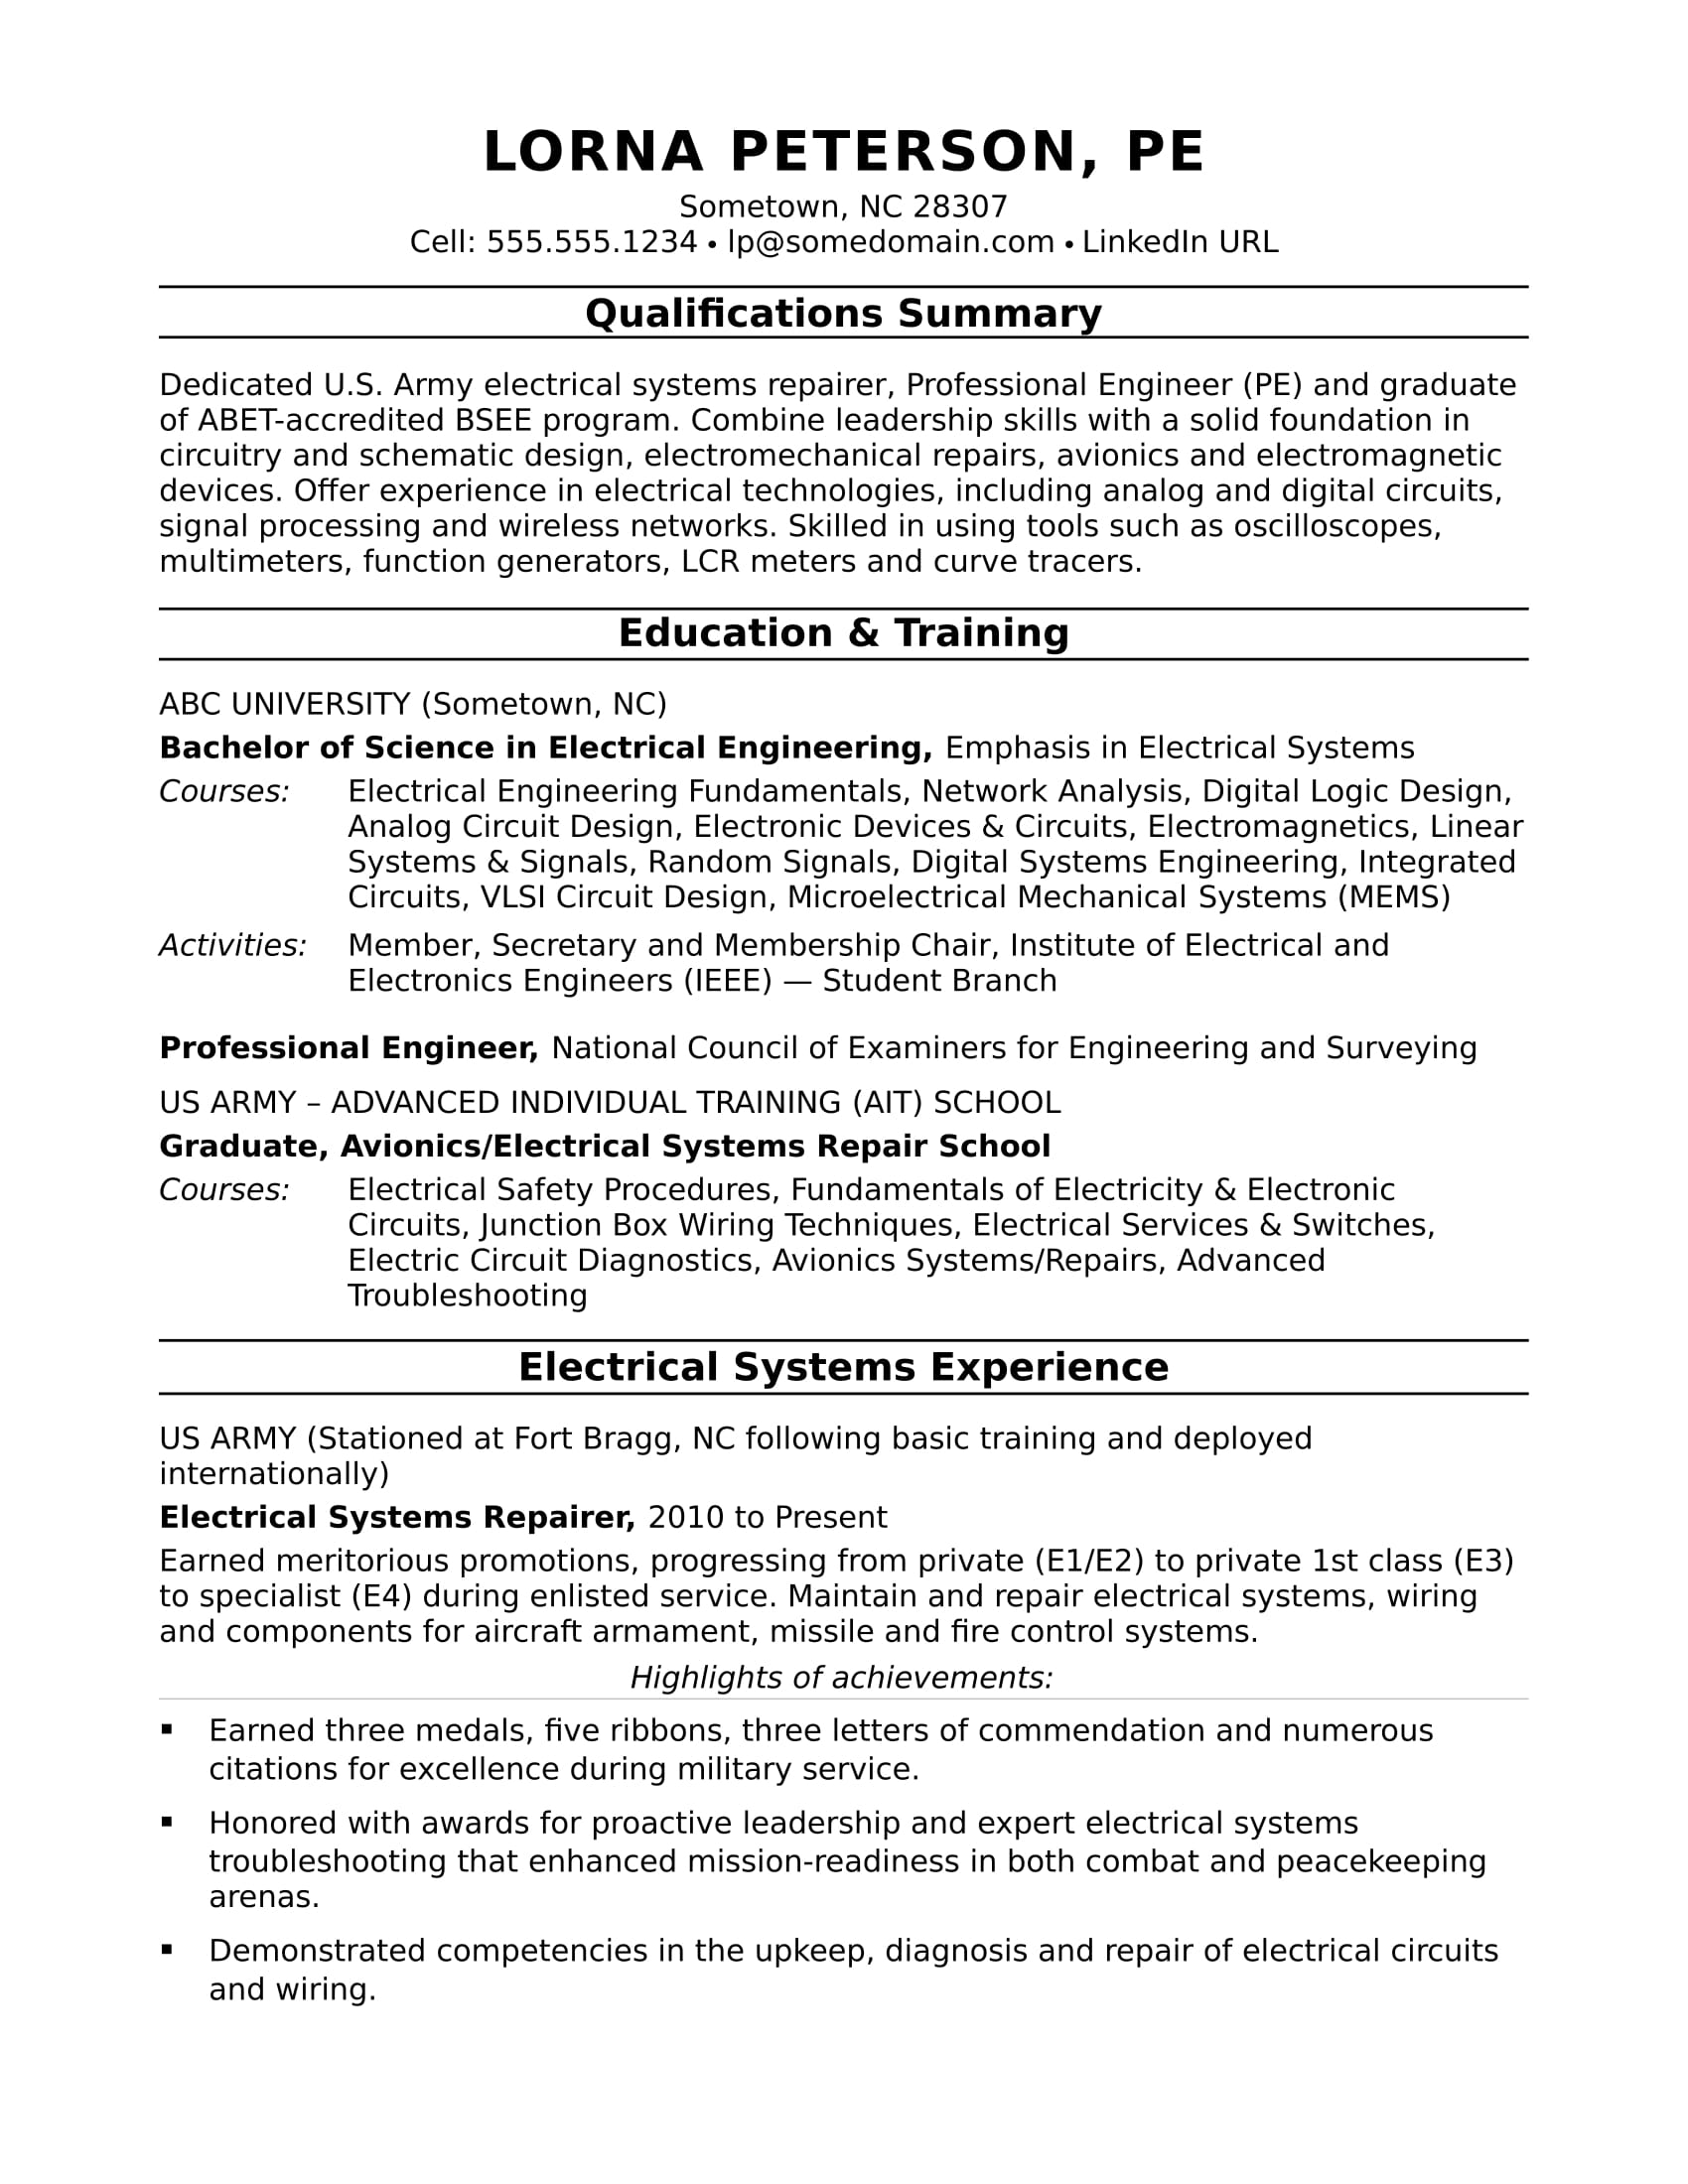 sample resume for a midlevel electrical engineer - Network Engineer Resume